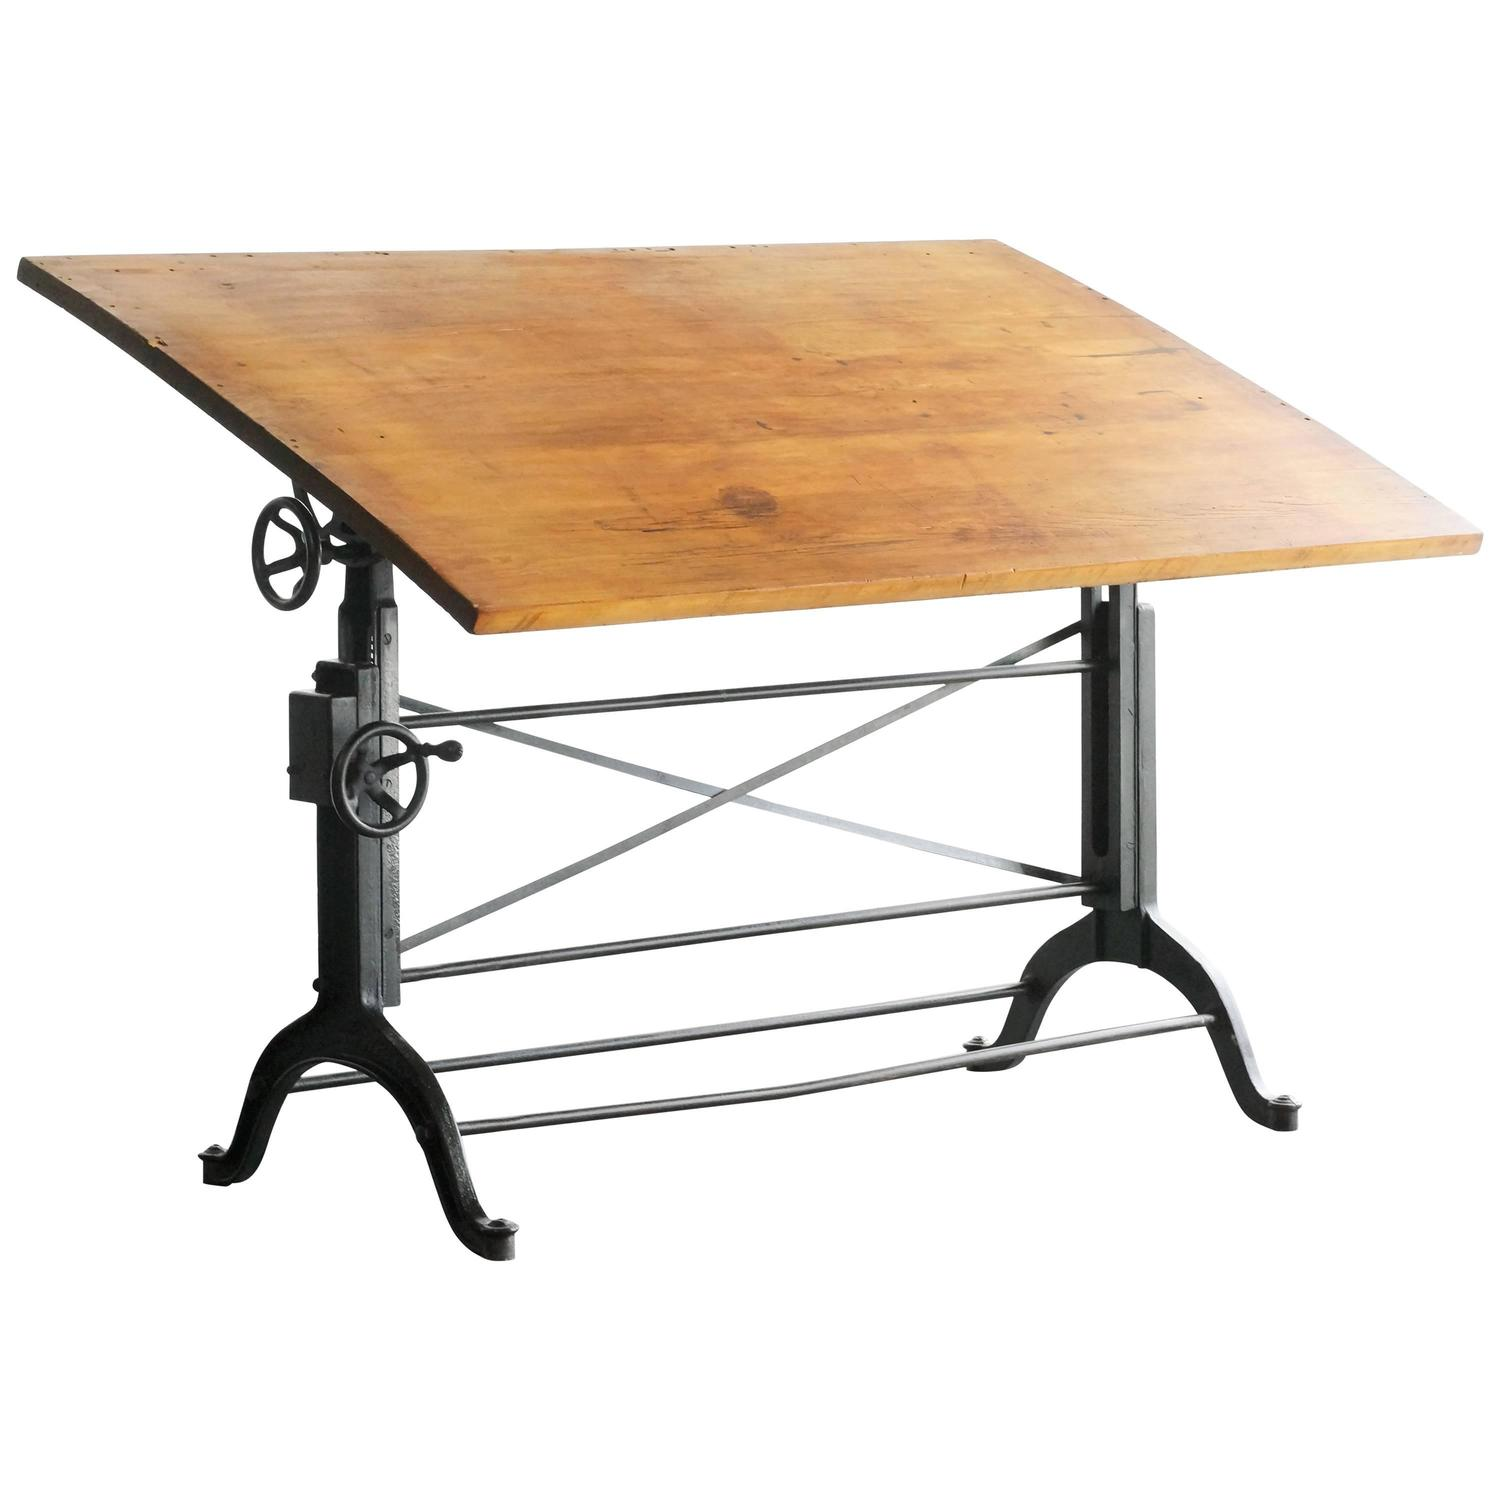 Drafting Table With Parallel BarCompose